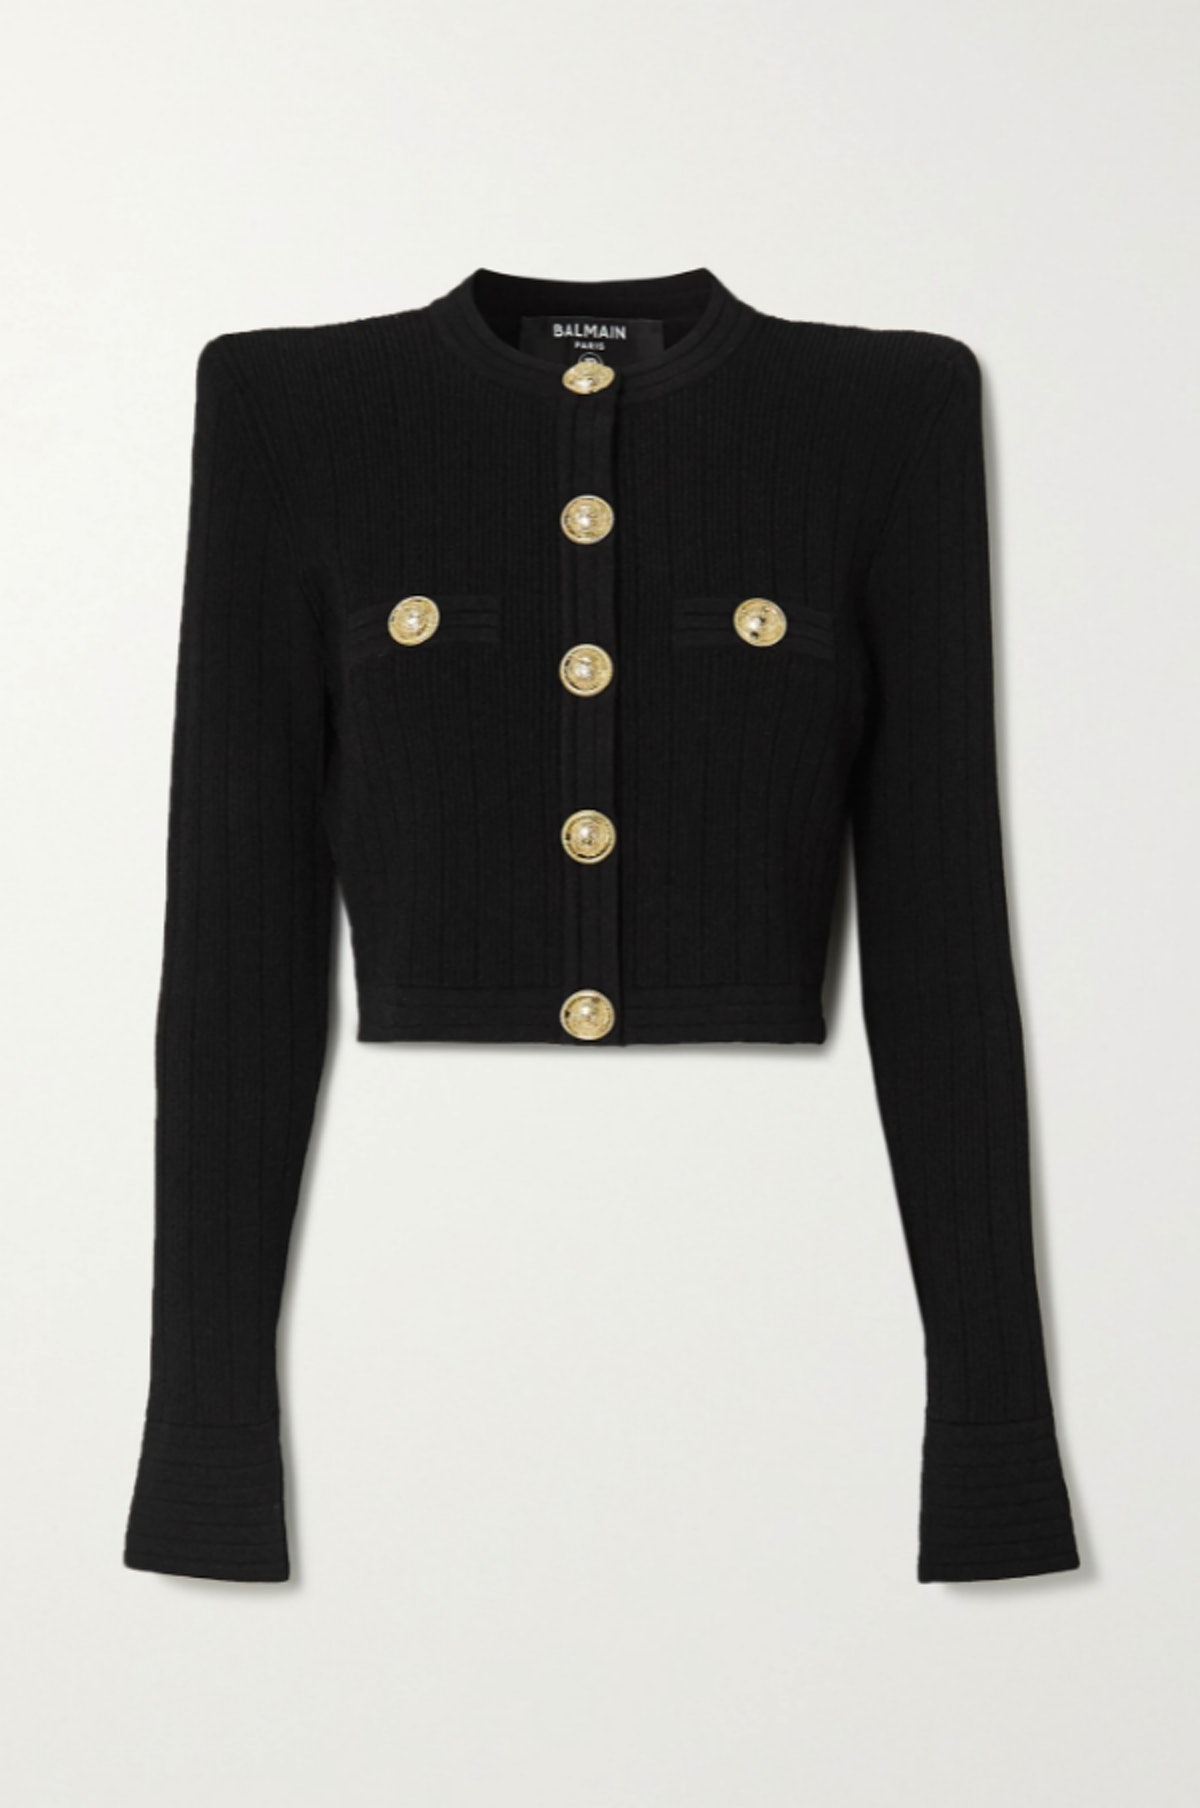 Balmain's cropped jacquard-knit blazer with gold embellished buttons.